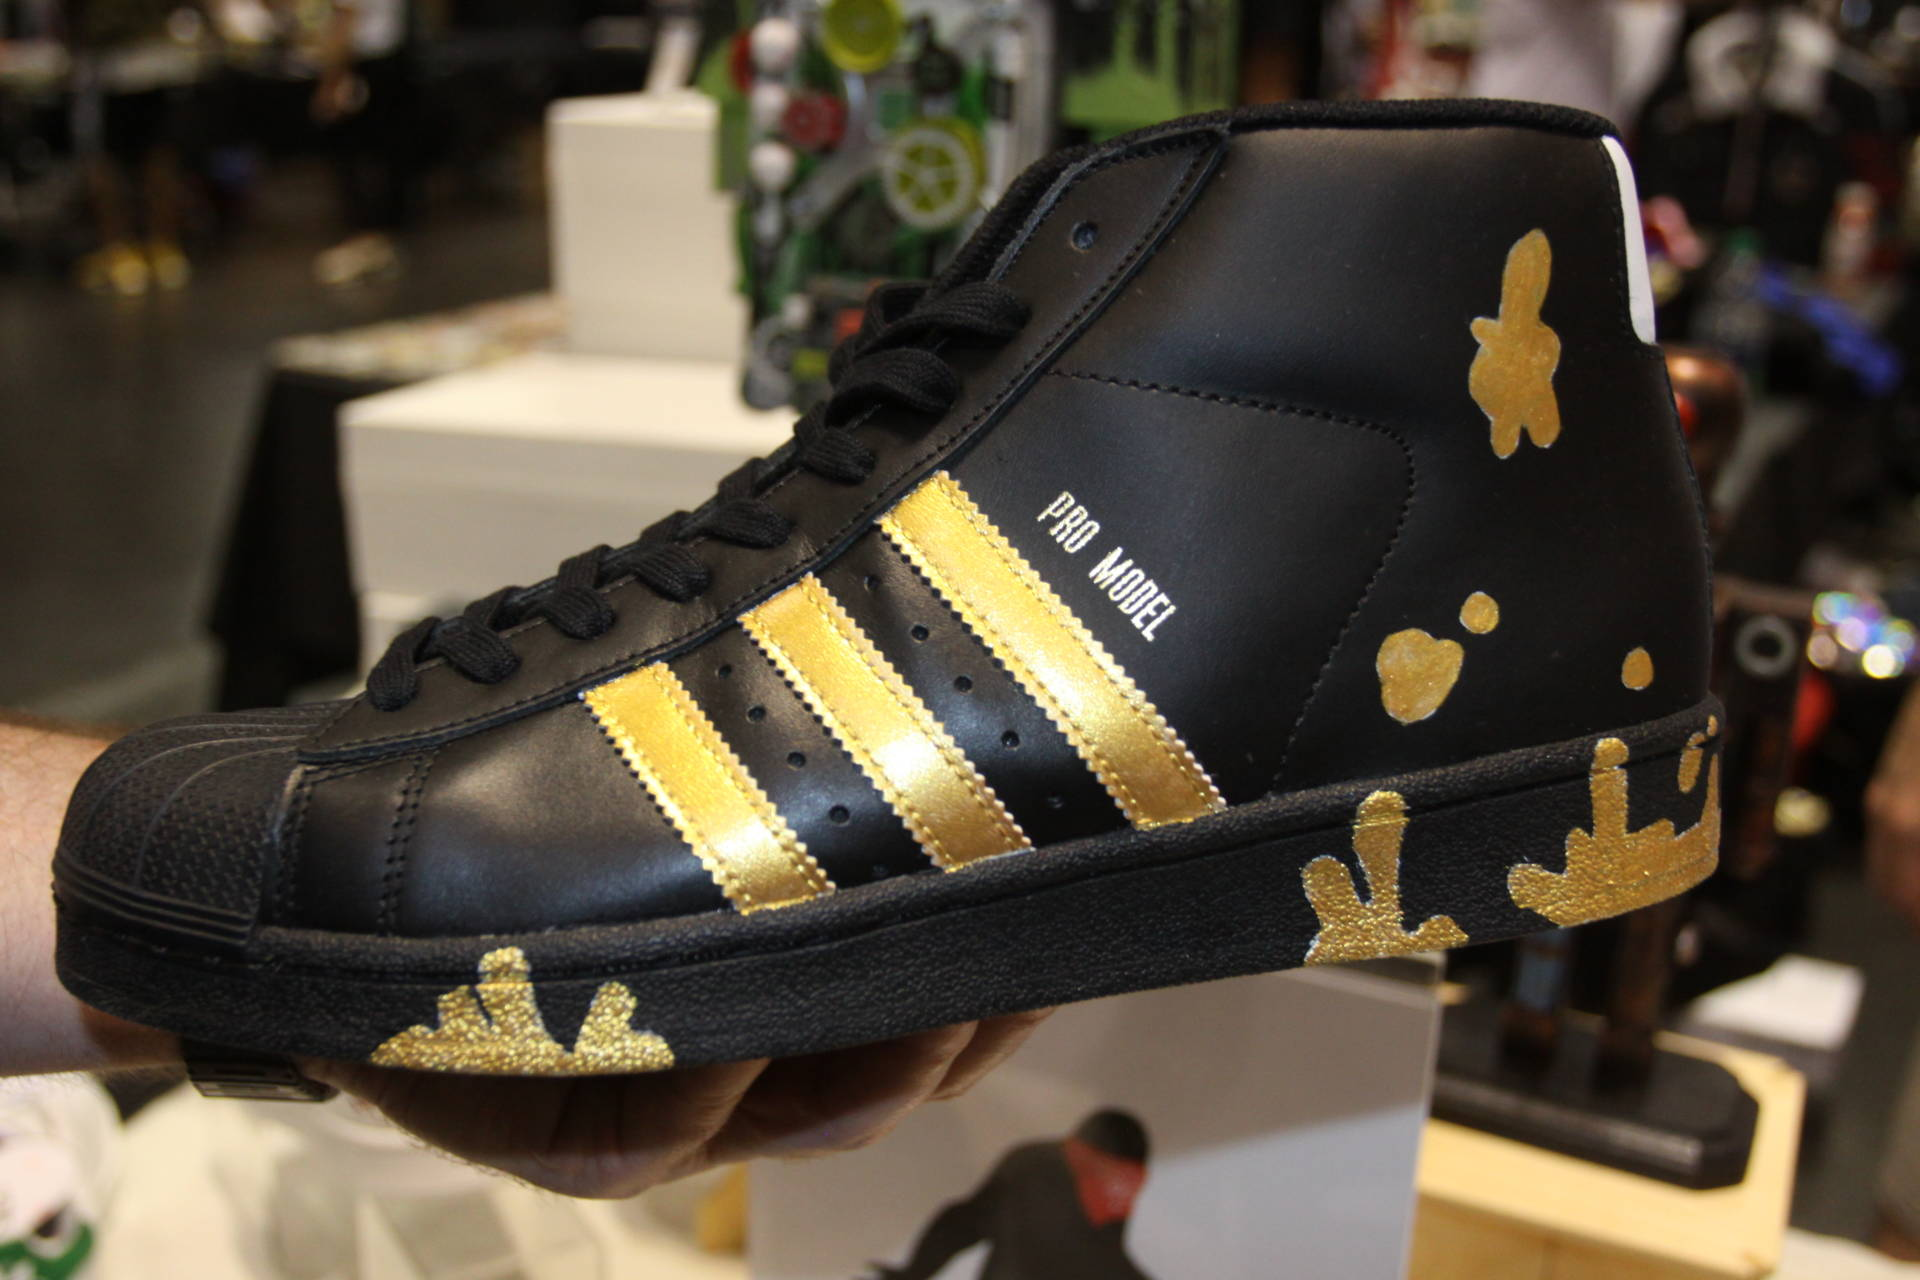 Local artist Rasterstache used 24-karat gold paint to create this pair of Adidas, which is priced at $650.